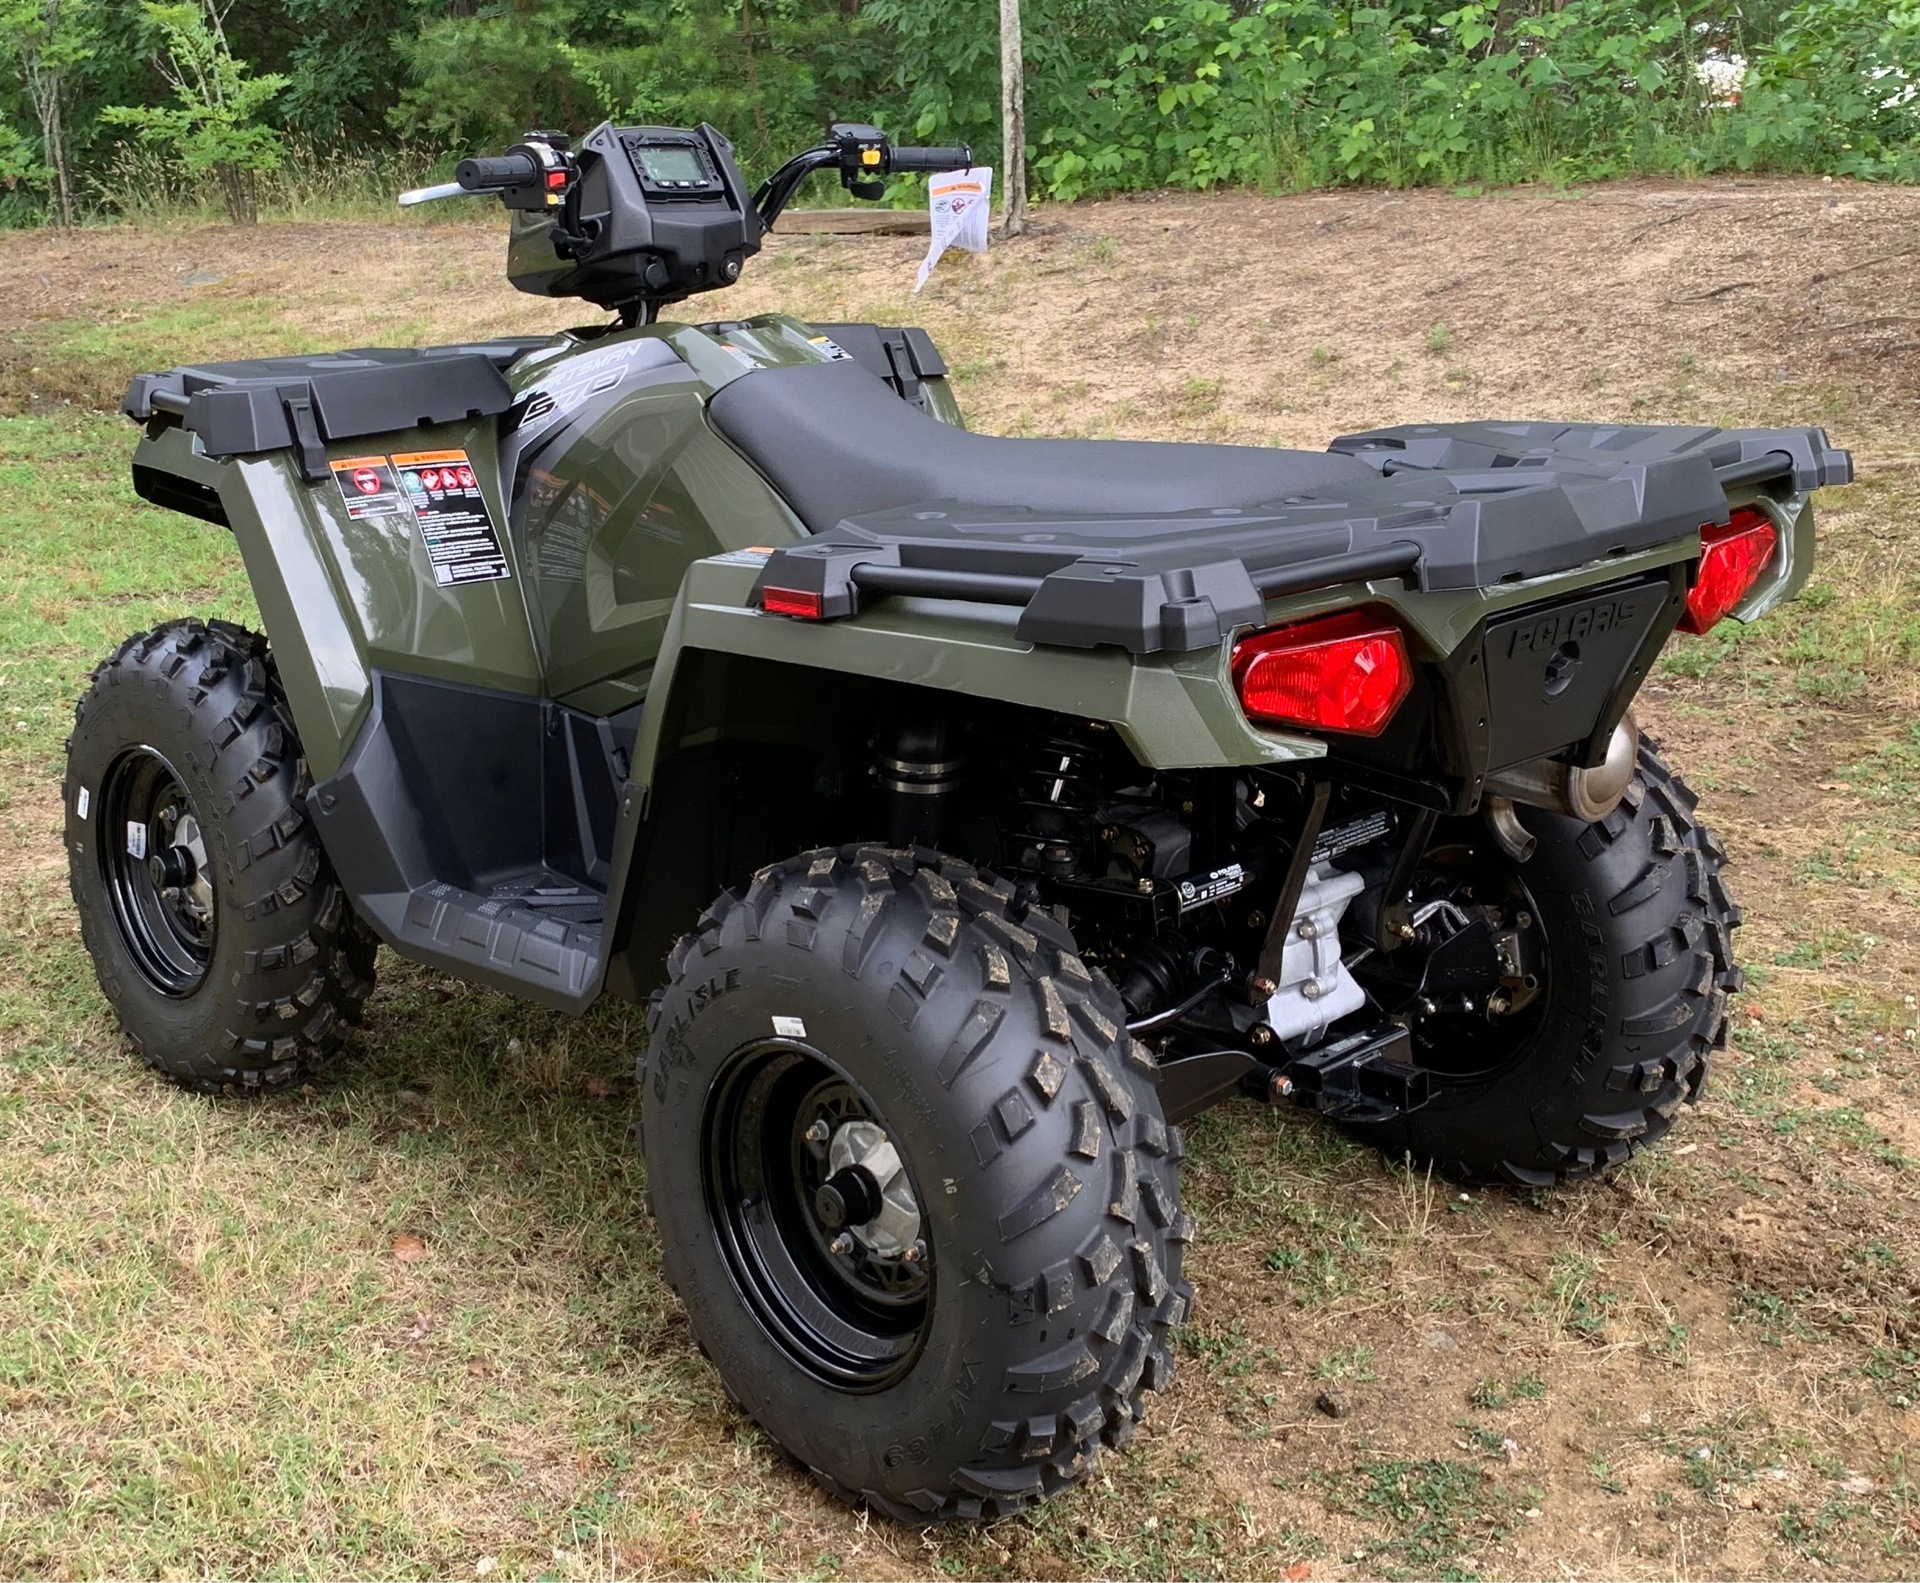 2019 Polaris Sportsman 570 in High Point, North Carolina - Photo 7